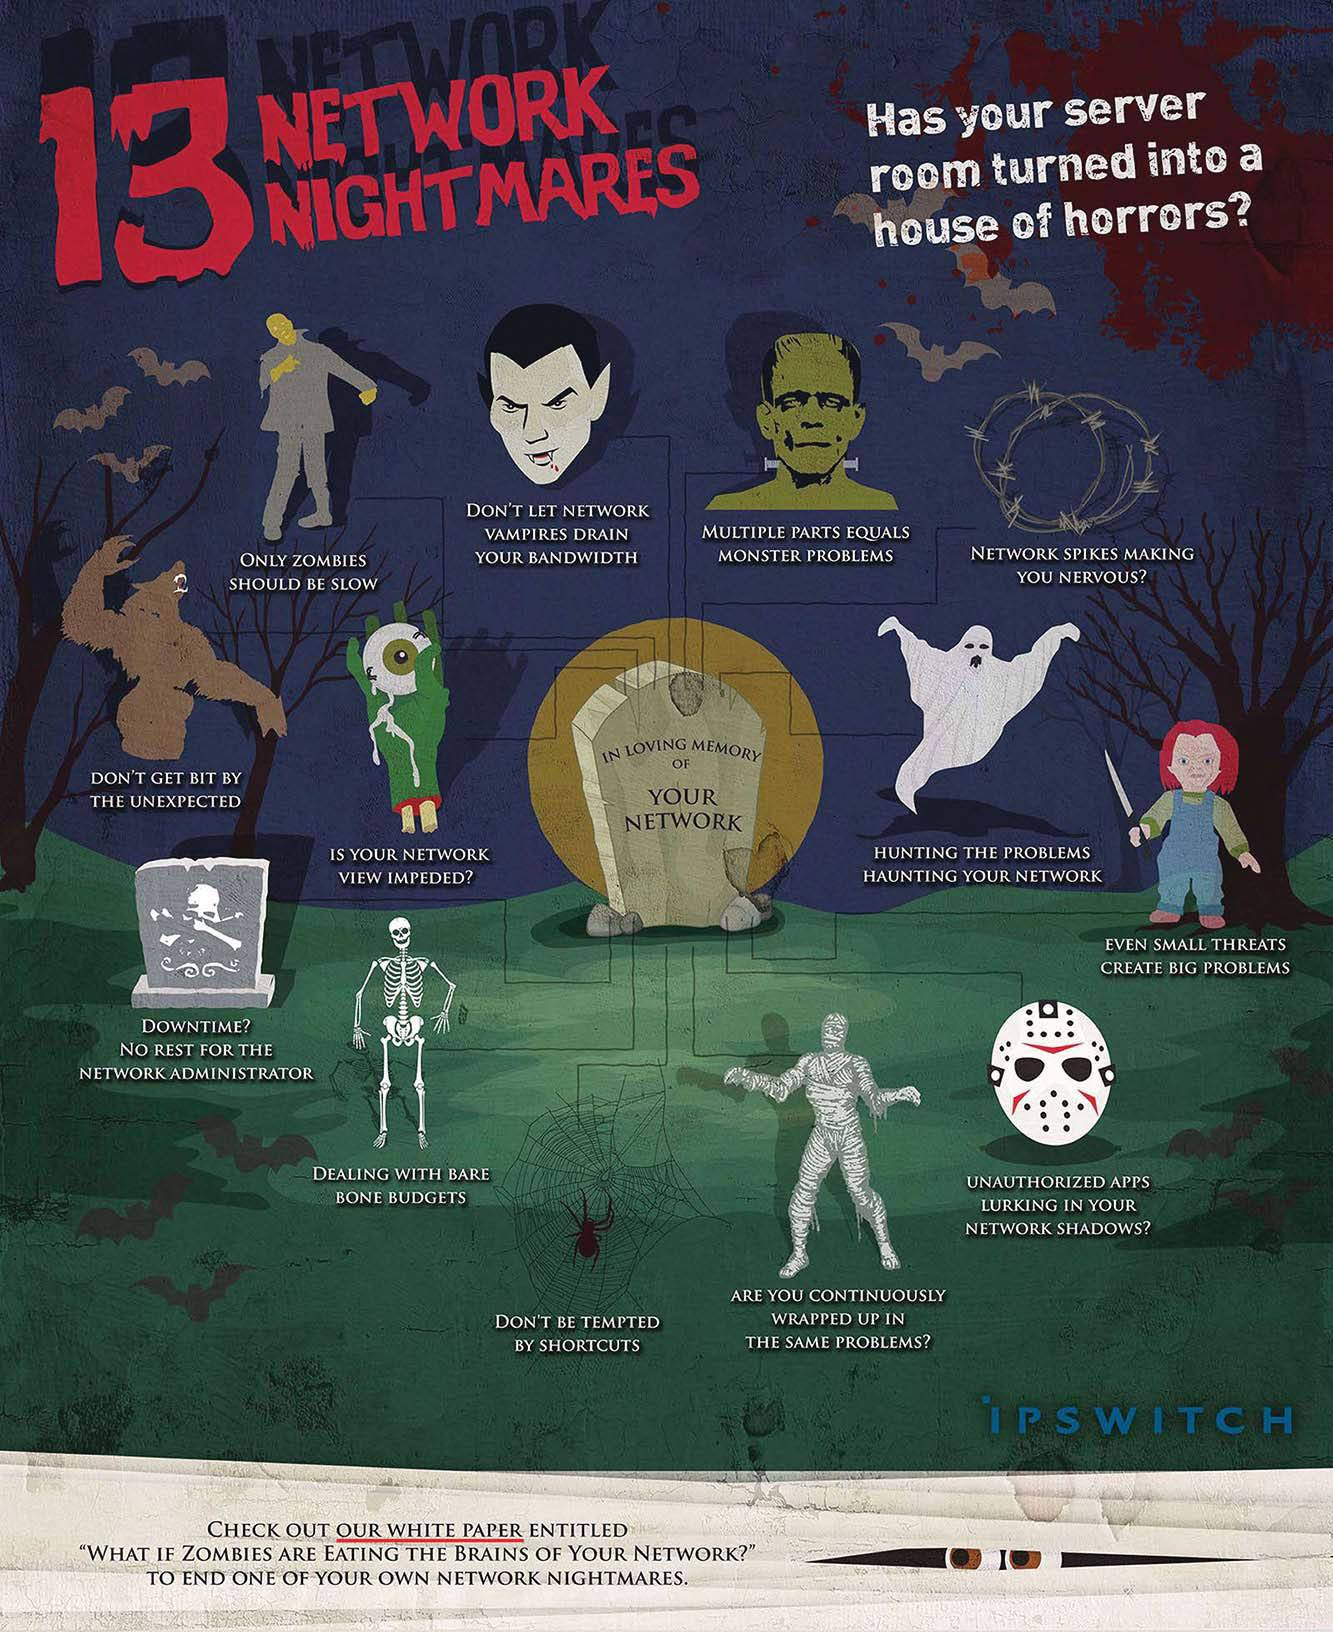 Halloween-Network-Nightmares_Ipswitch-2014